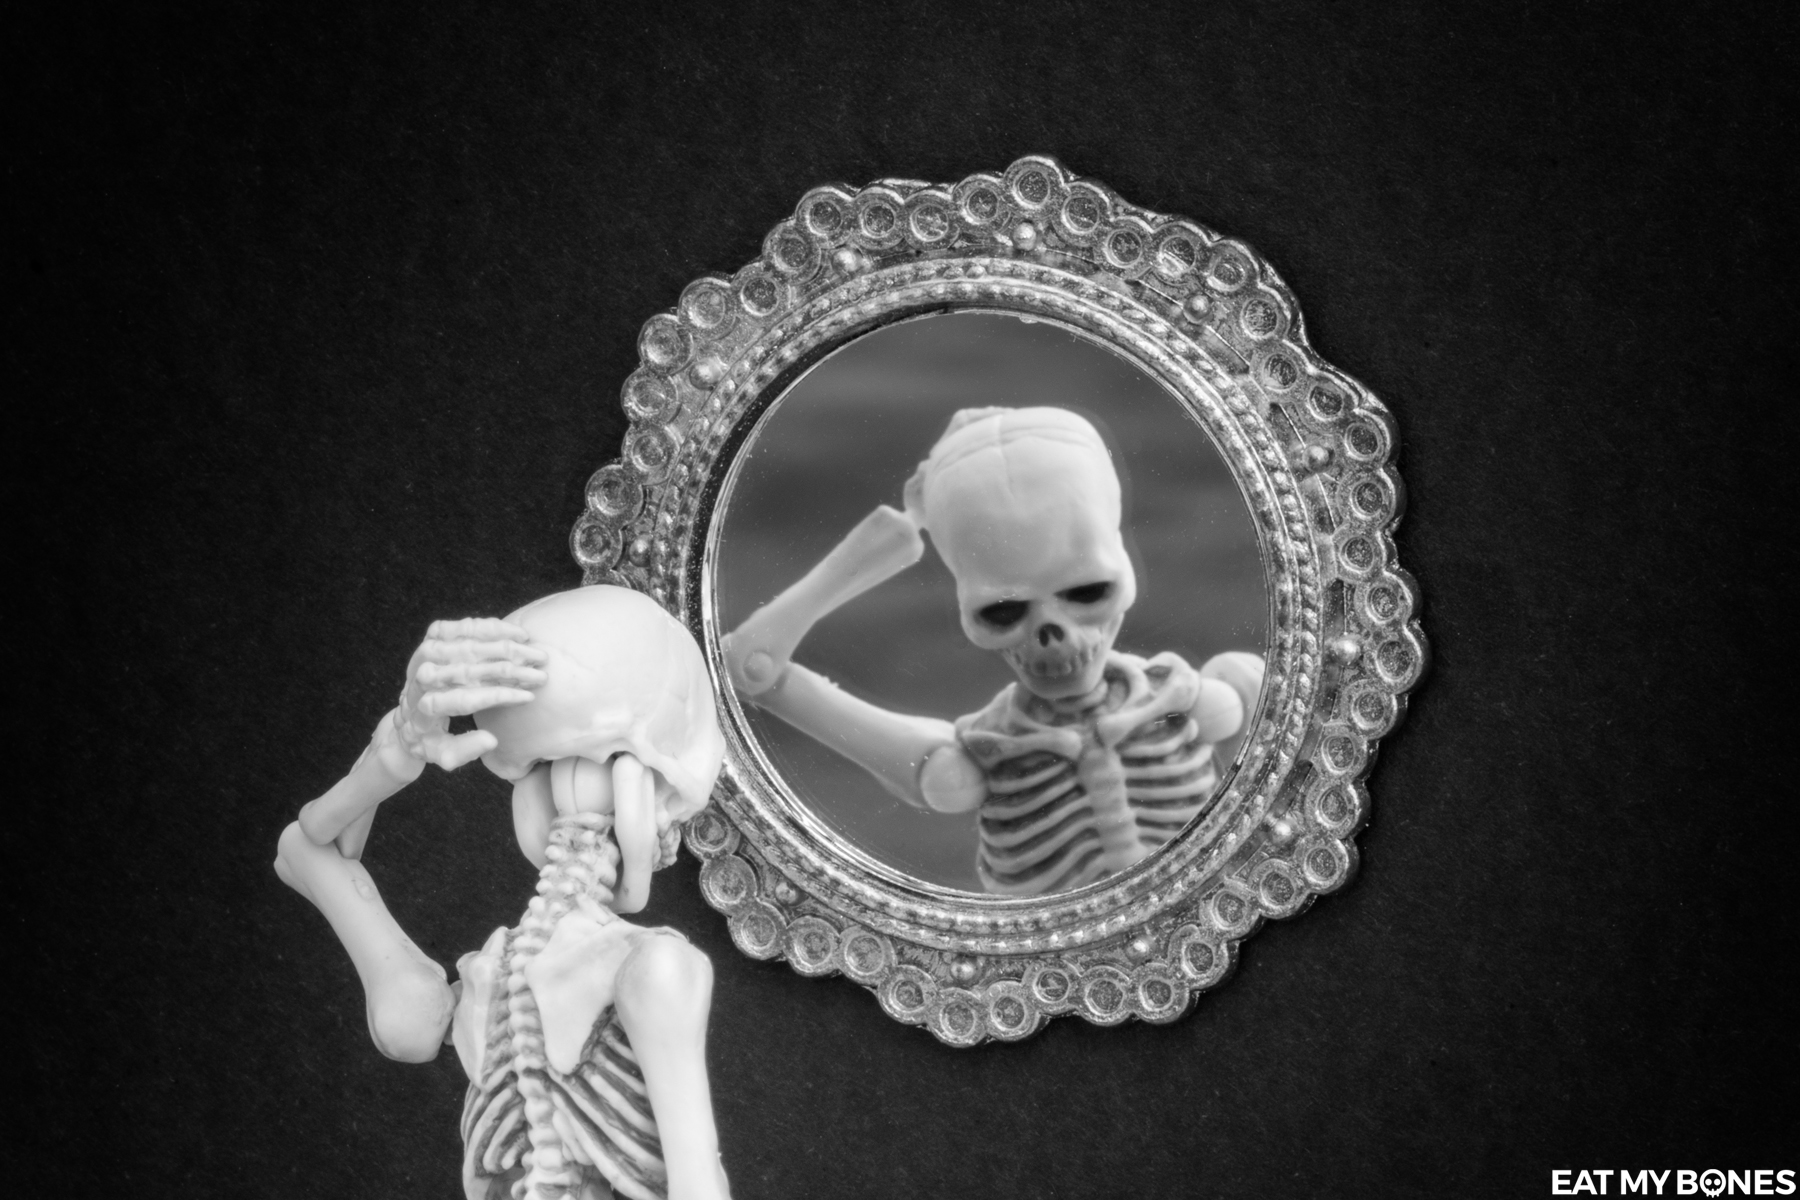 Confidence sipgoes52 - Pose Skeleton - Toy photography - Miniature - Eat my Bones